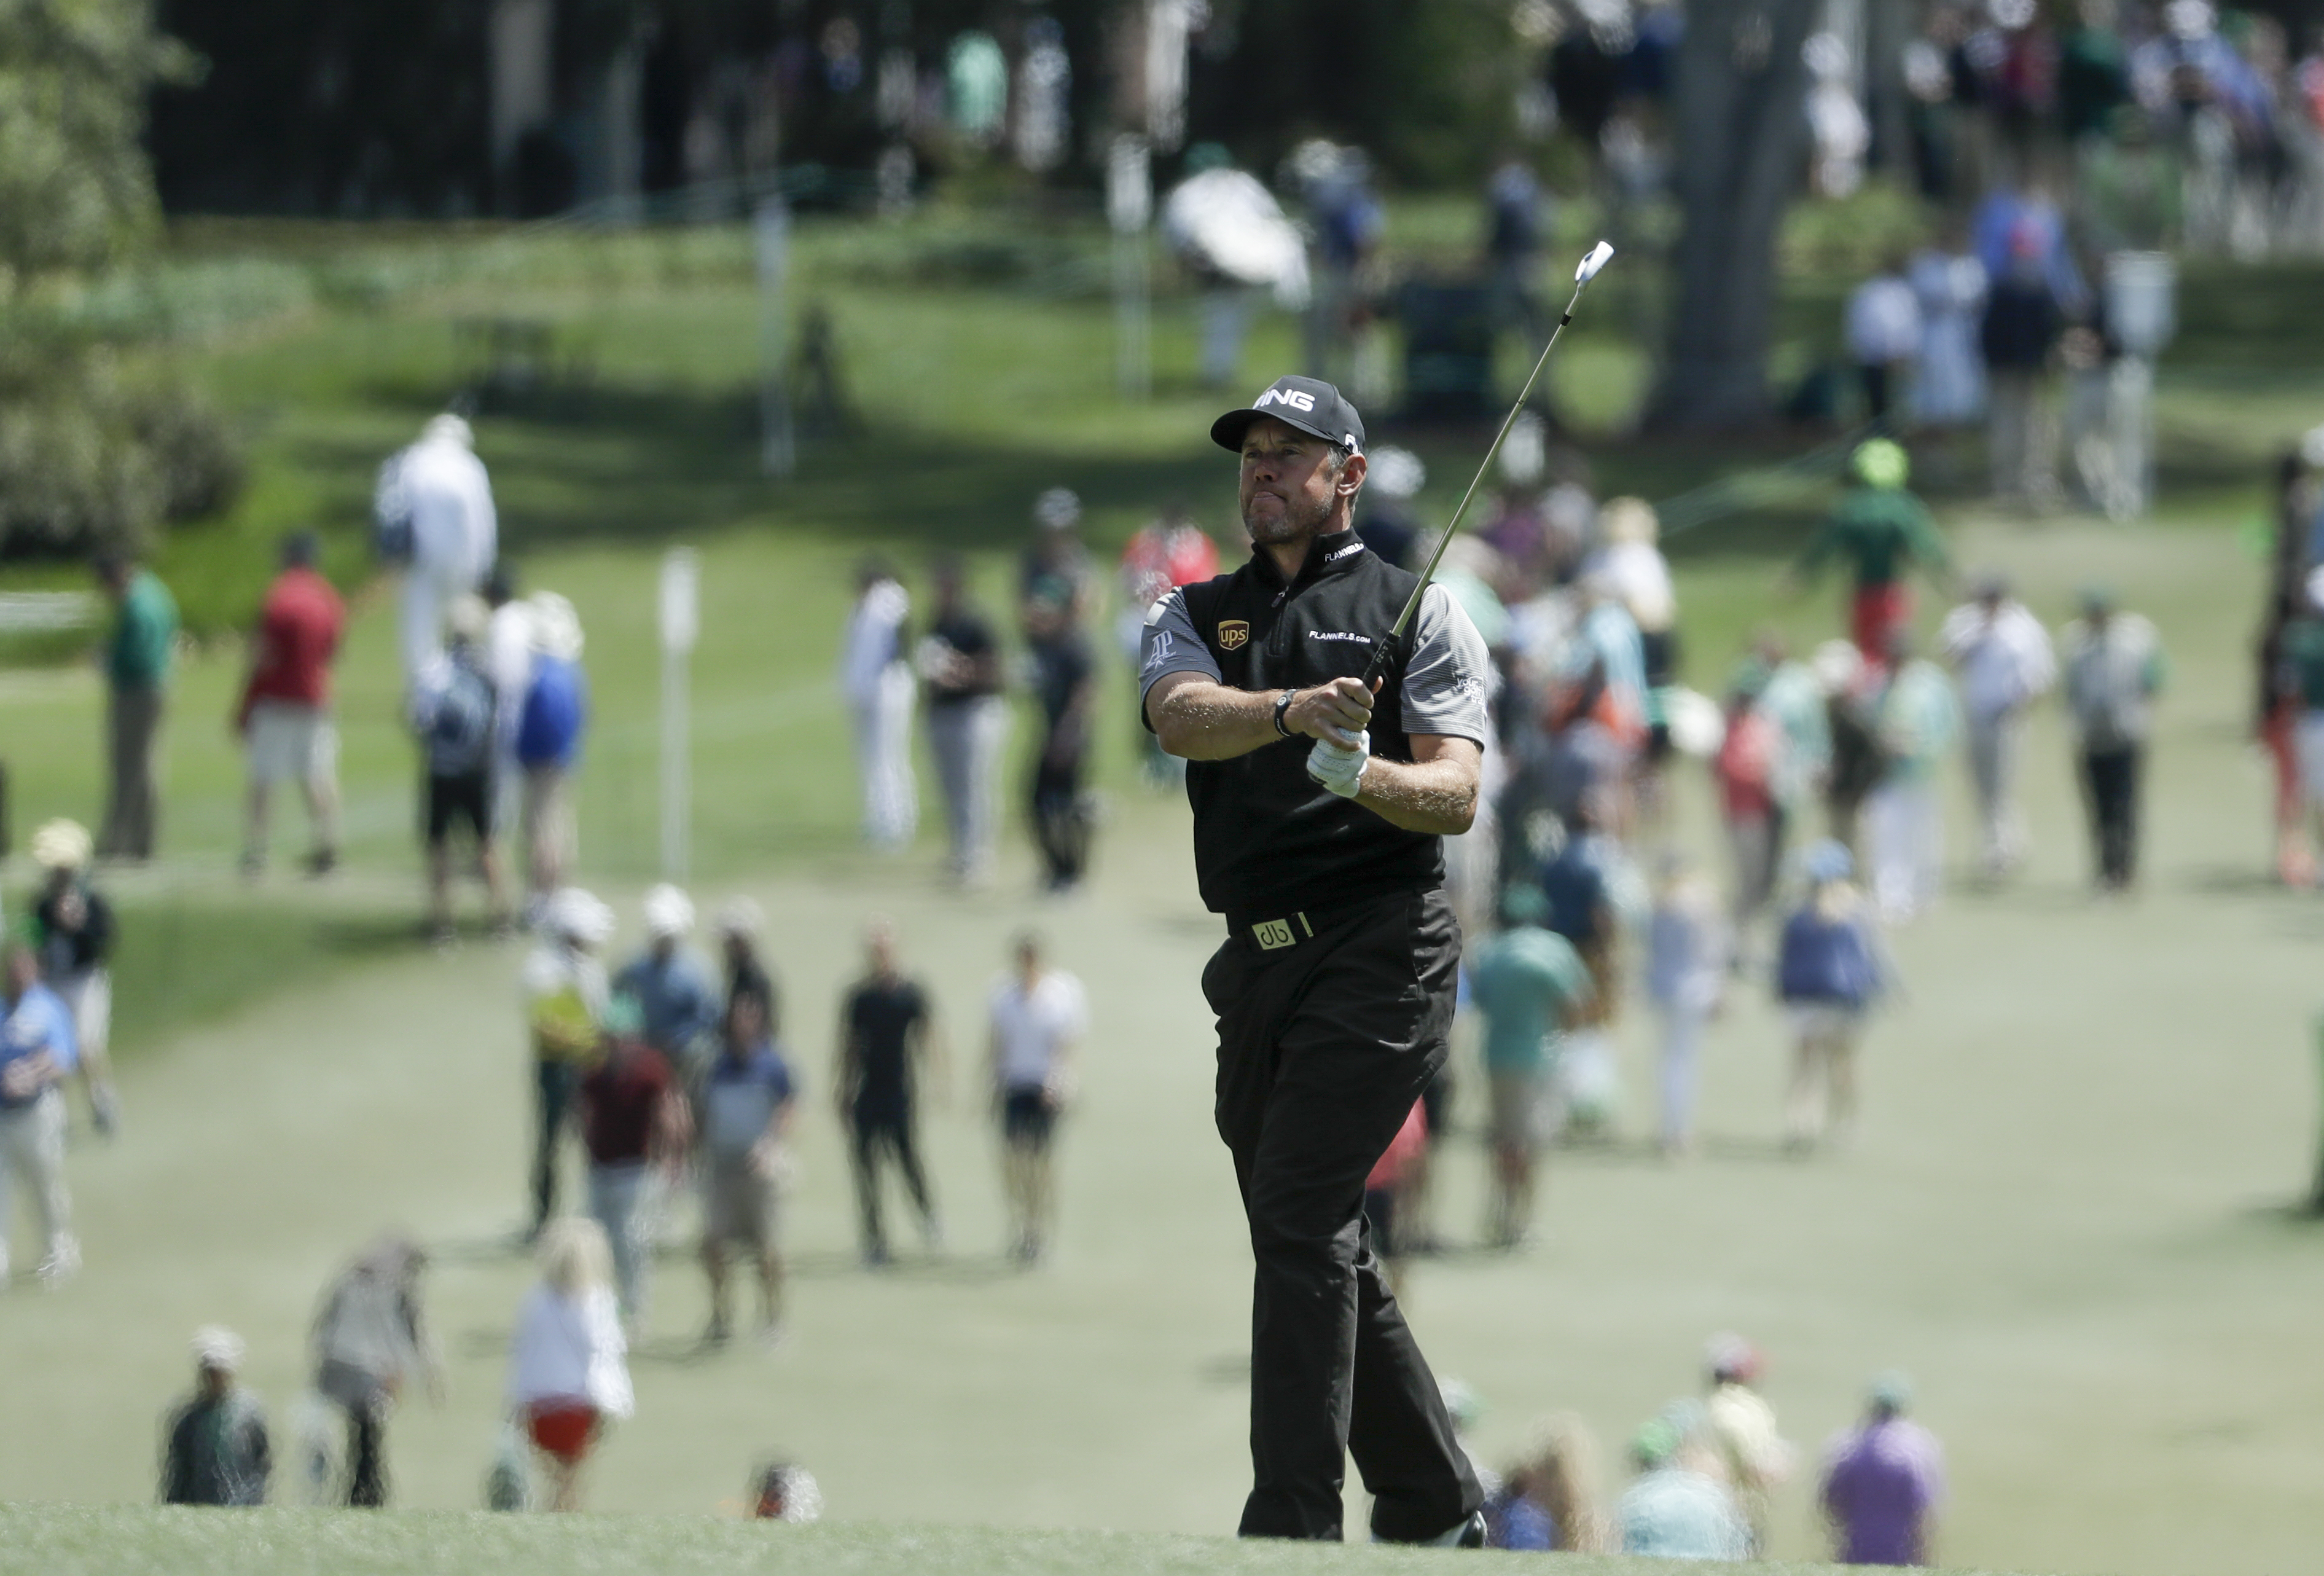 Lee Westwood, of England, hits to the first green during the third round of the Masters golf tournament Saturday, April 8, 2017, in Augusta, Ga. (AP Photo/Chris Carlson)